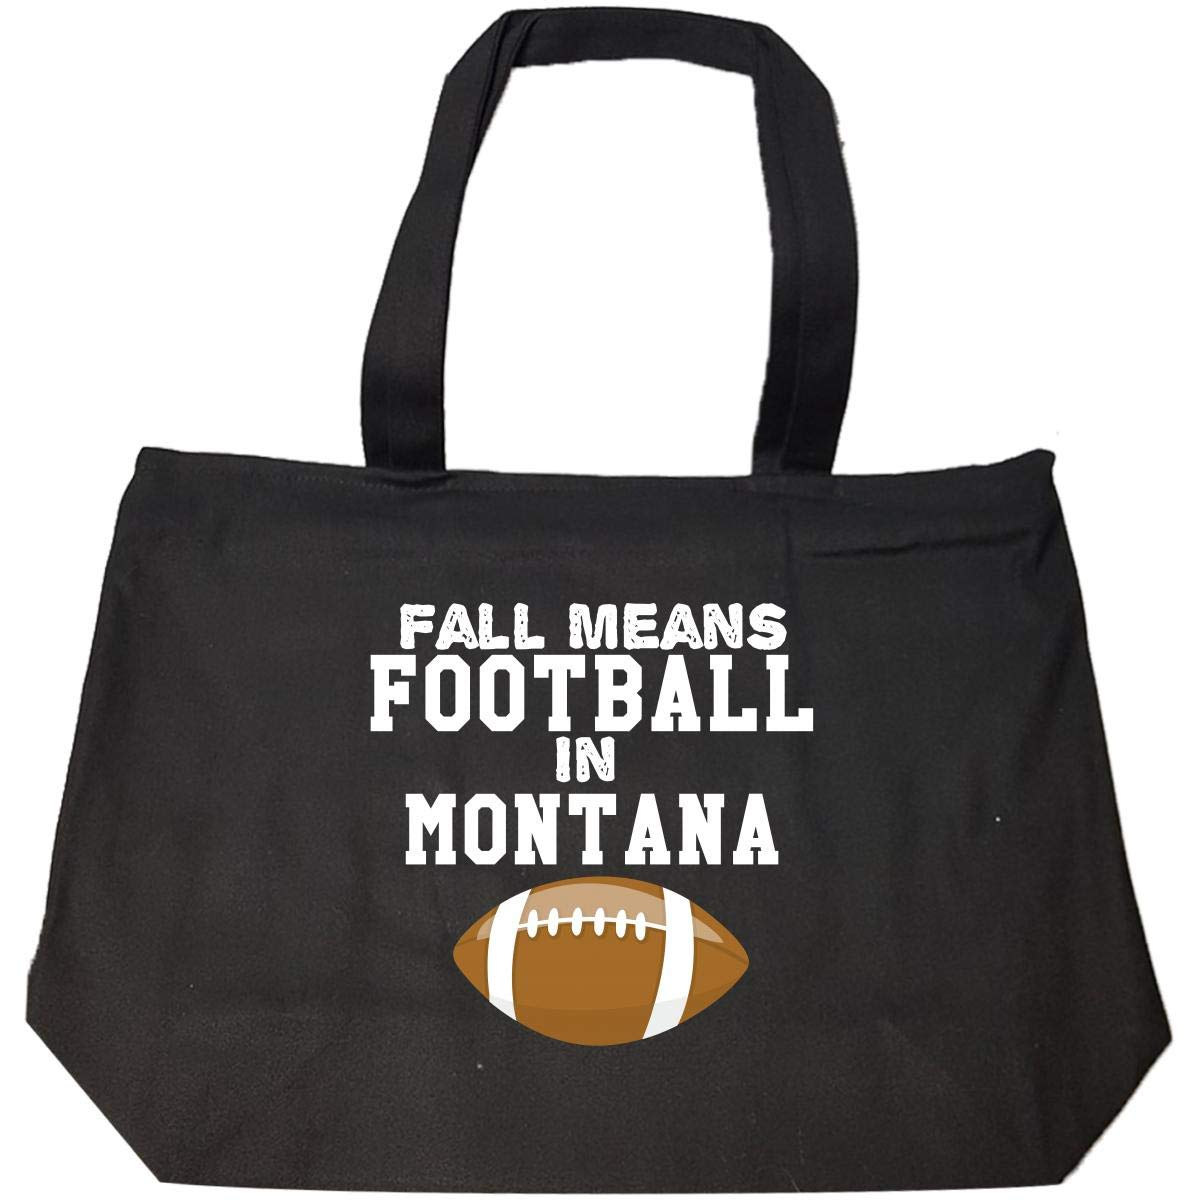 Fall Means Football In Montana Tote Bag With Zip